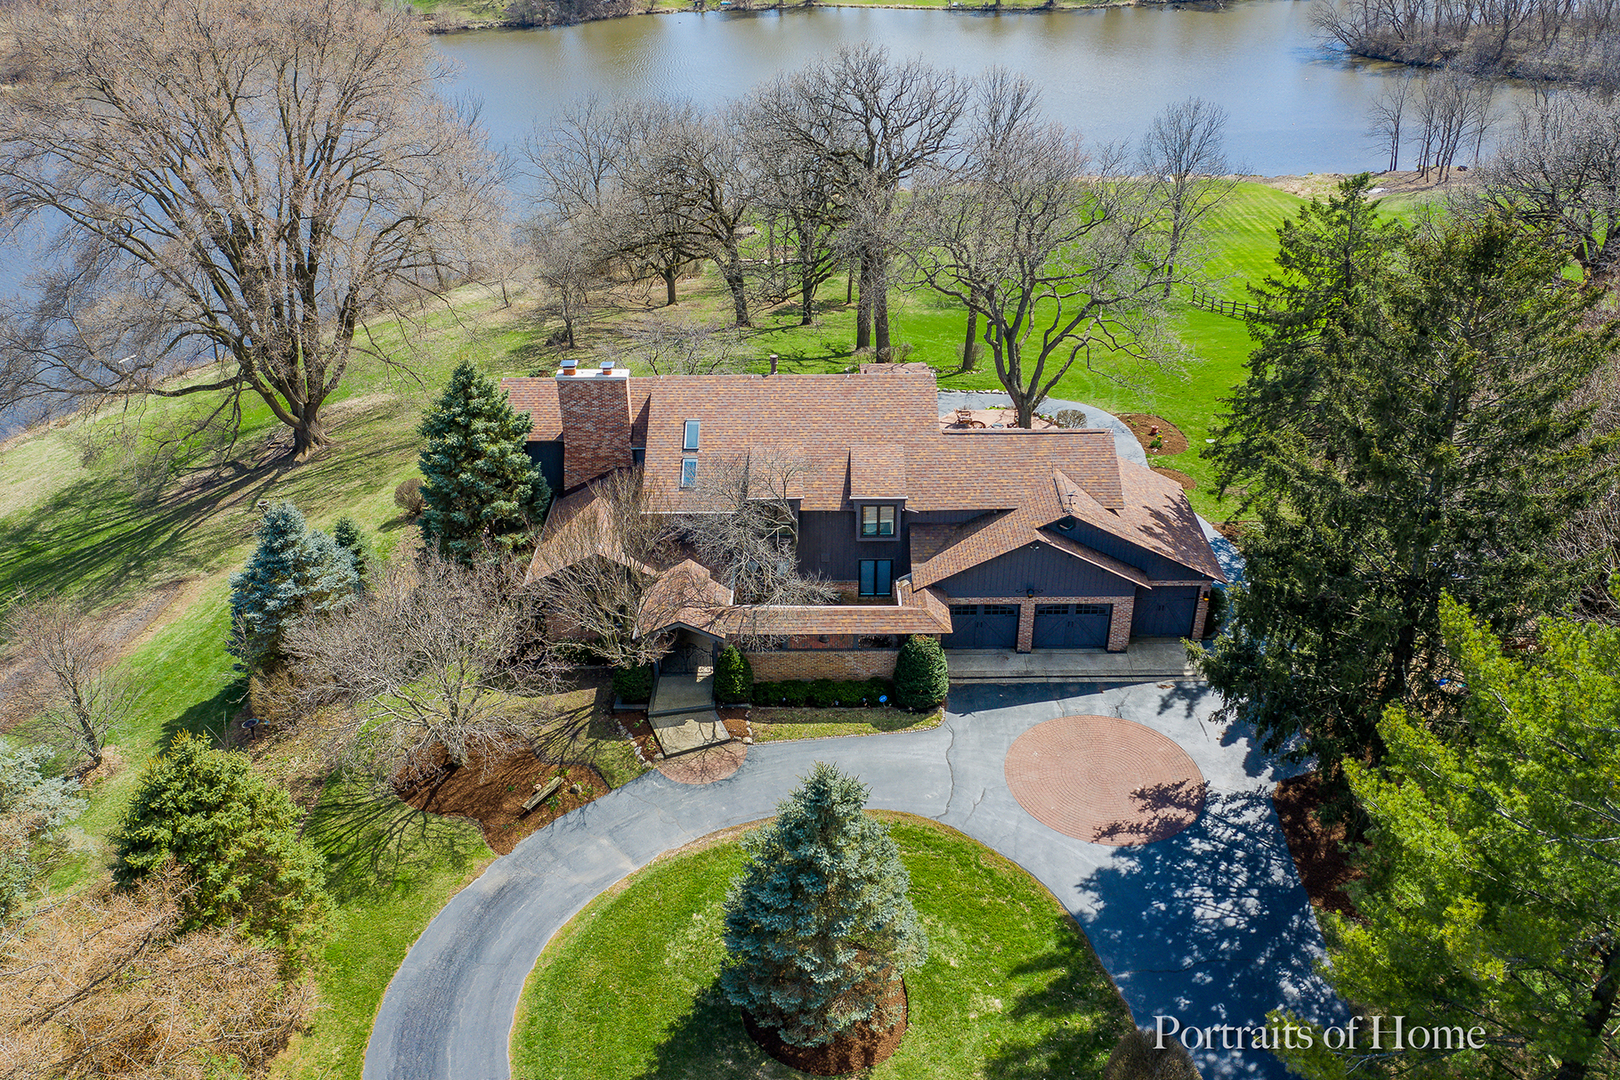 41W255 Empire, ST. CHARLES, Illinois, 60175